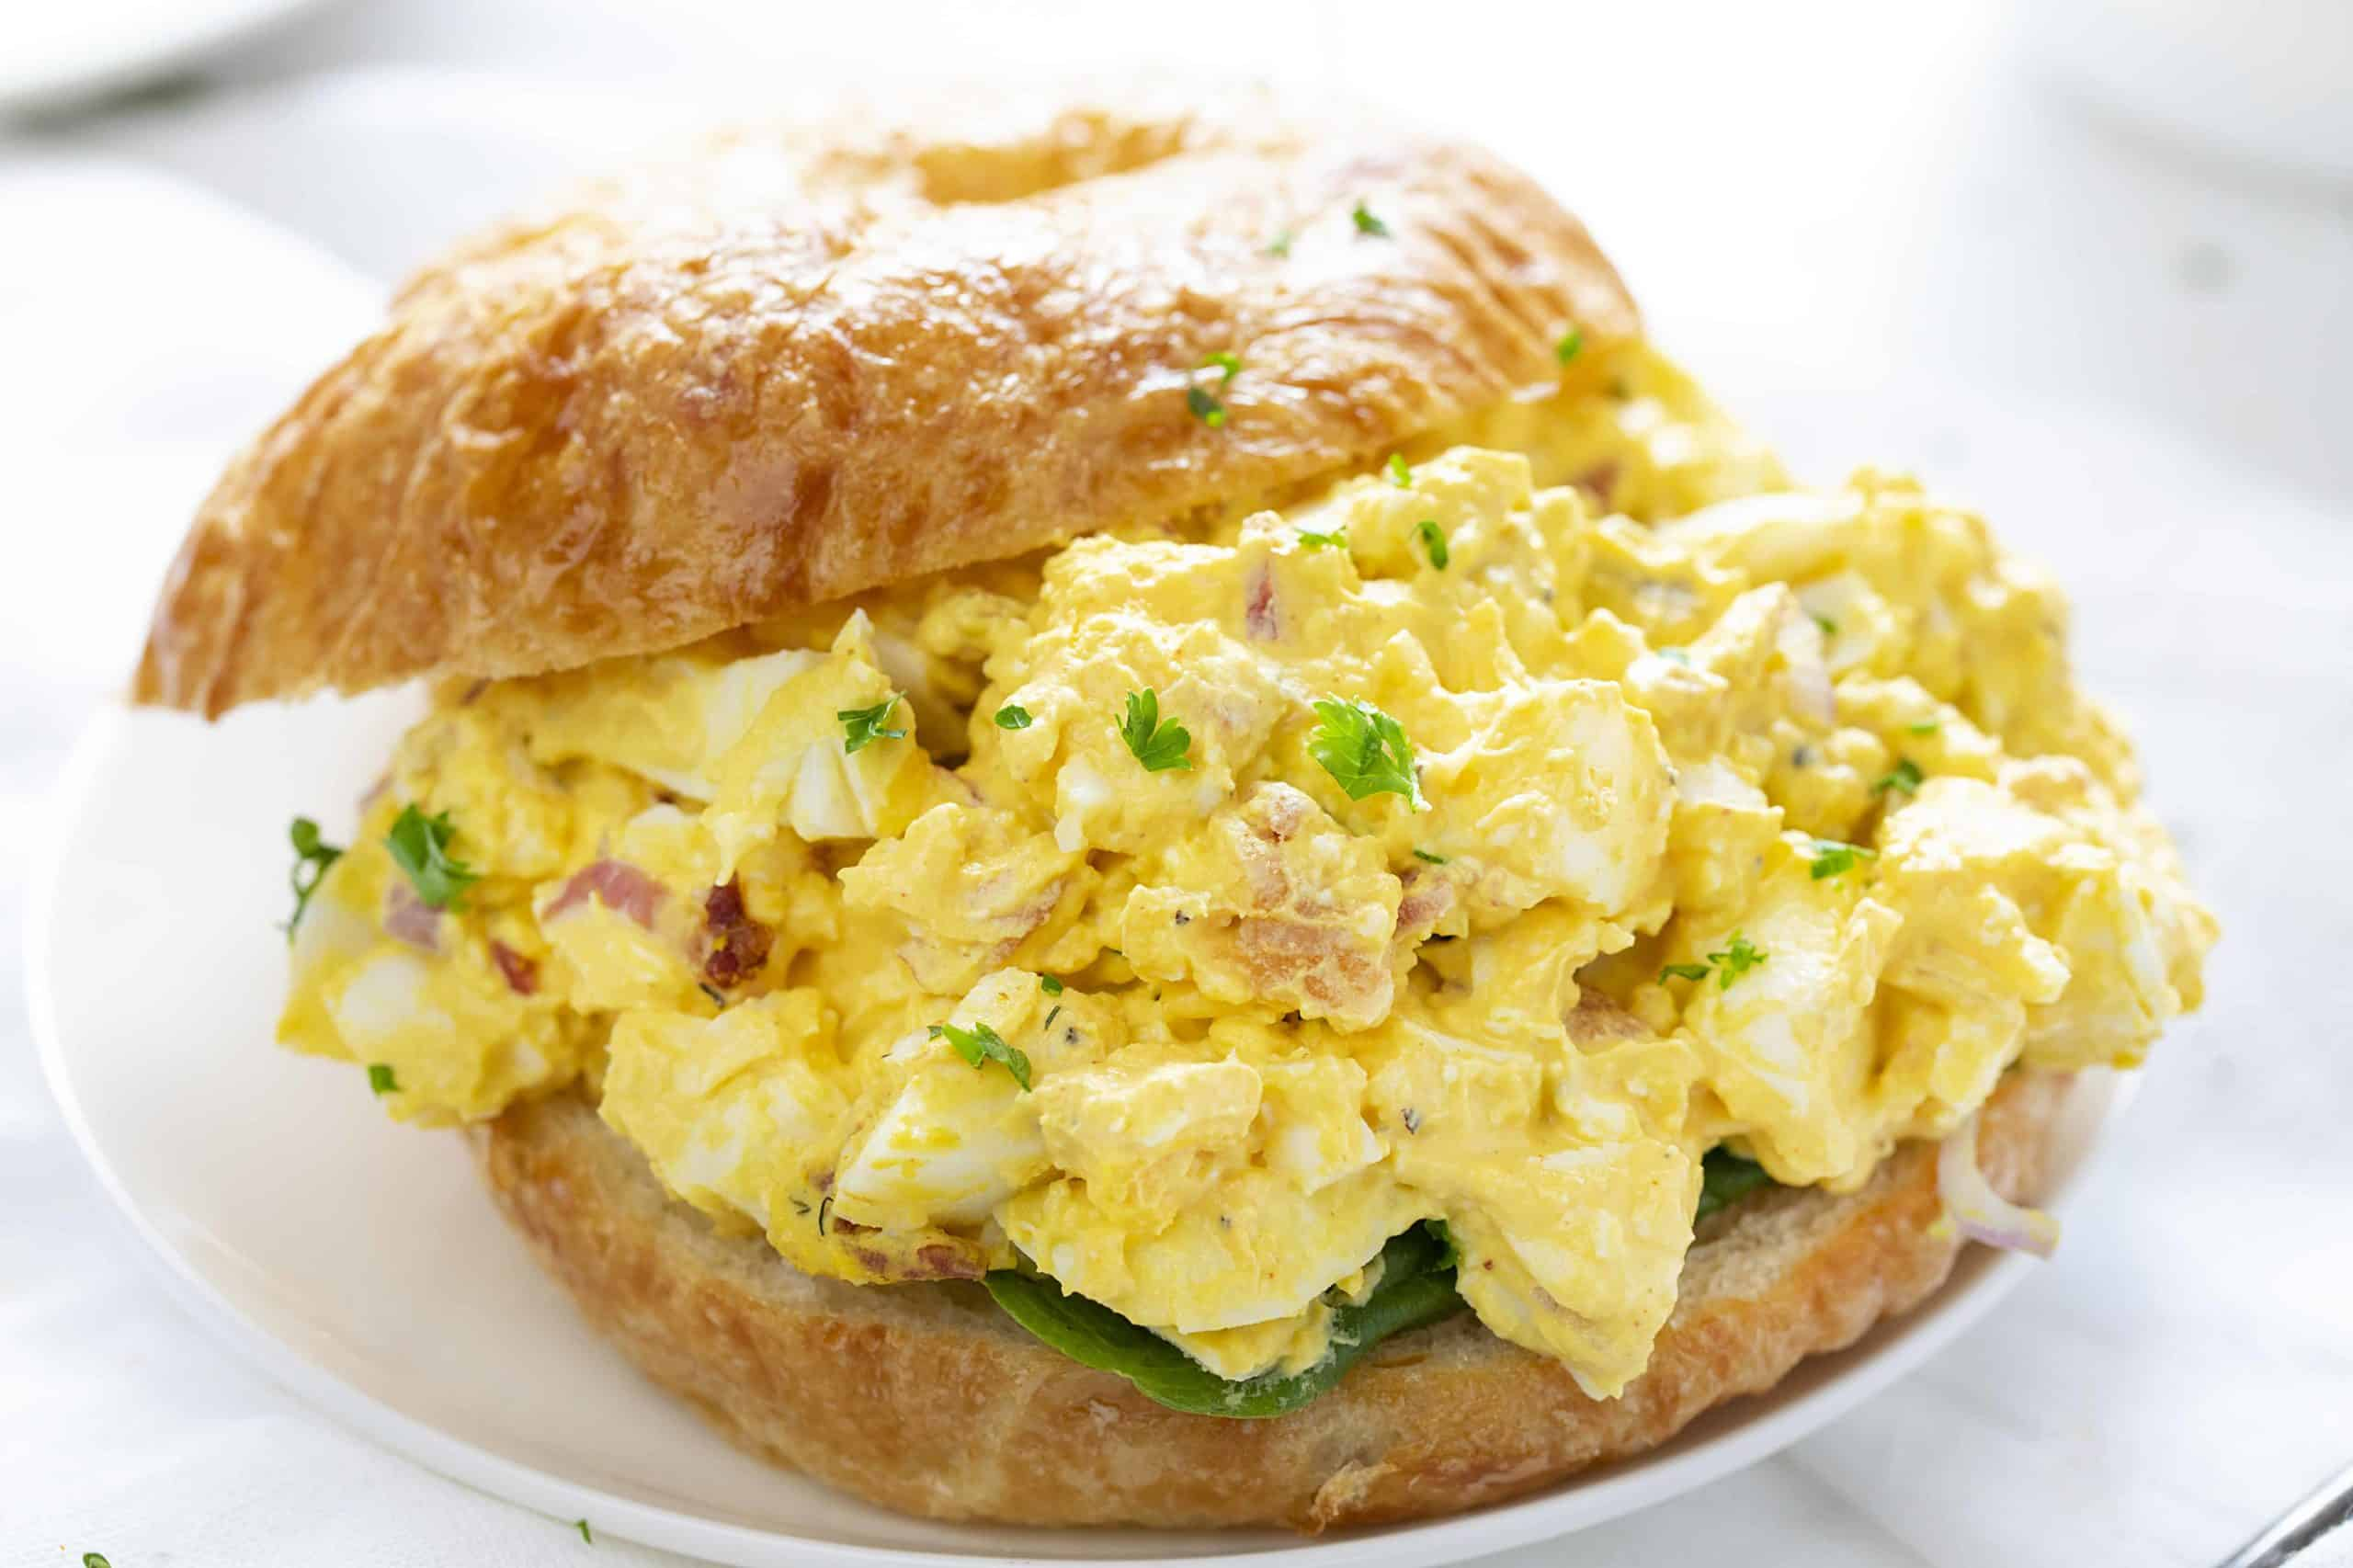 https://iambaker.net/wp-content/uploads/2019/04/6H5A9290.eggsalad.jpg